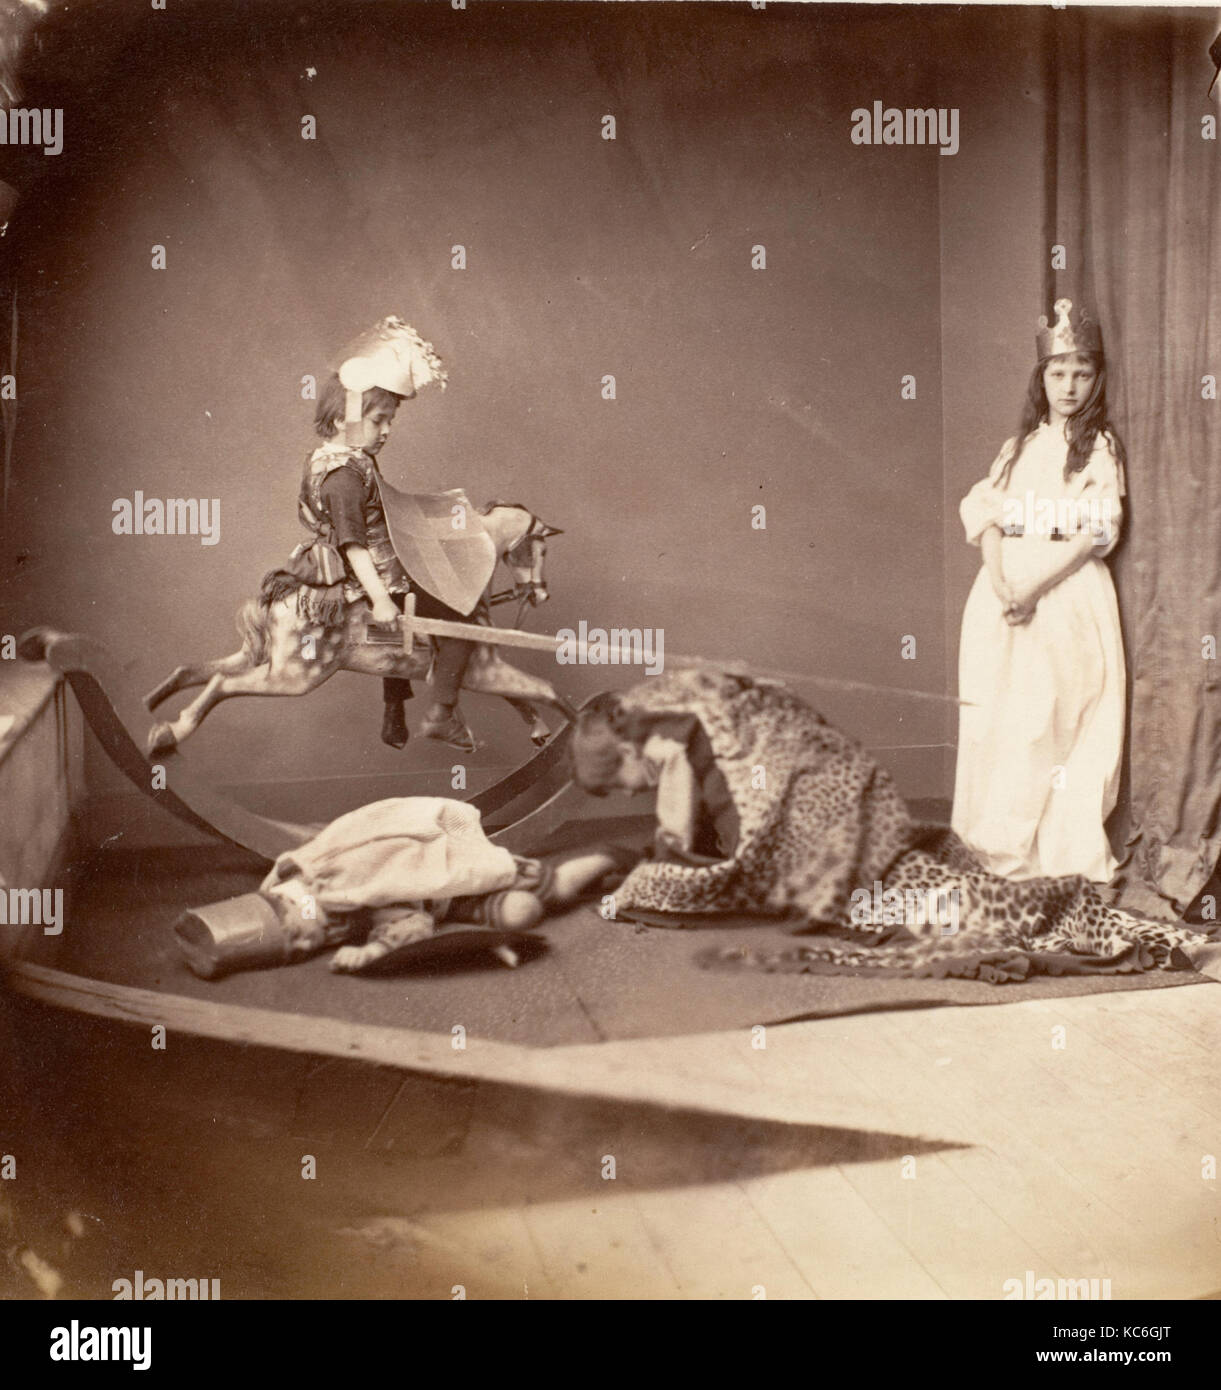 St. George and the Dragon, Lewis Carroll, June 26, 1875 - Stock Image